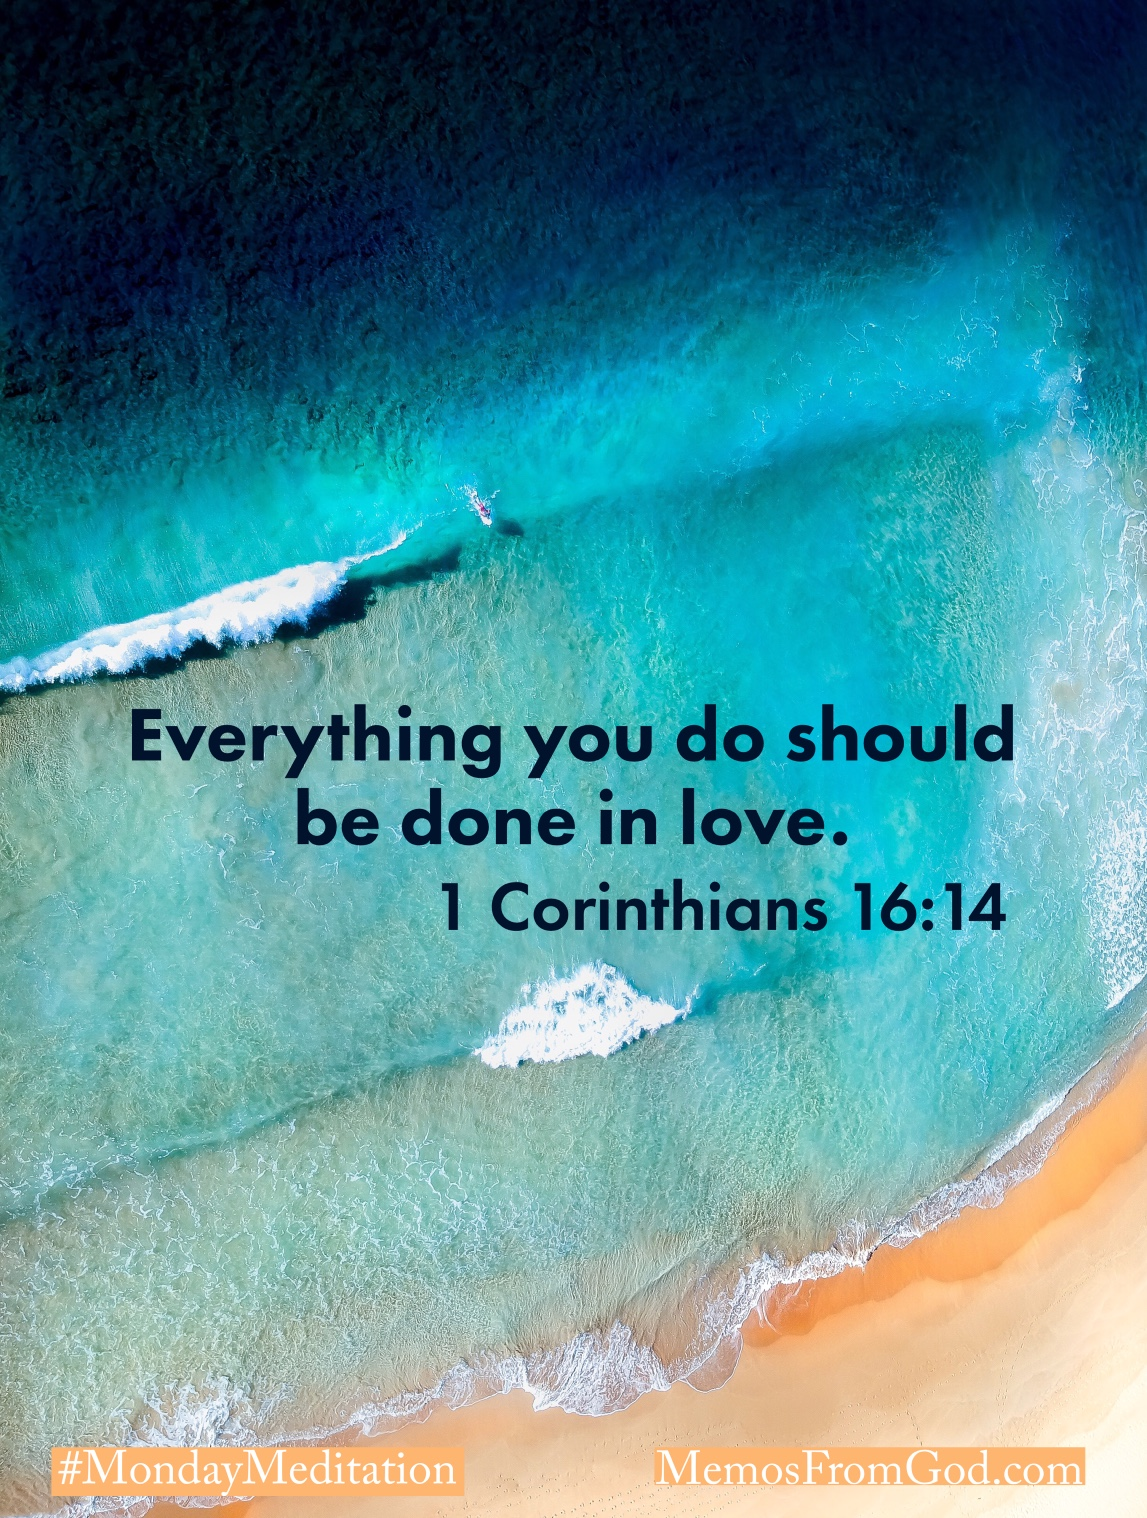 A beach, viewed from above, with golden sand, turquoise water, and a surfer. Caption: Everything you do should be done in love. 1 Corinthians 16:14